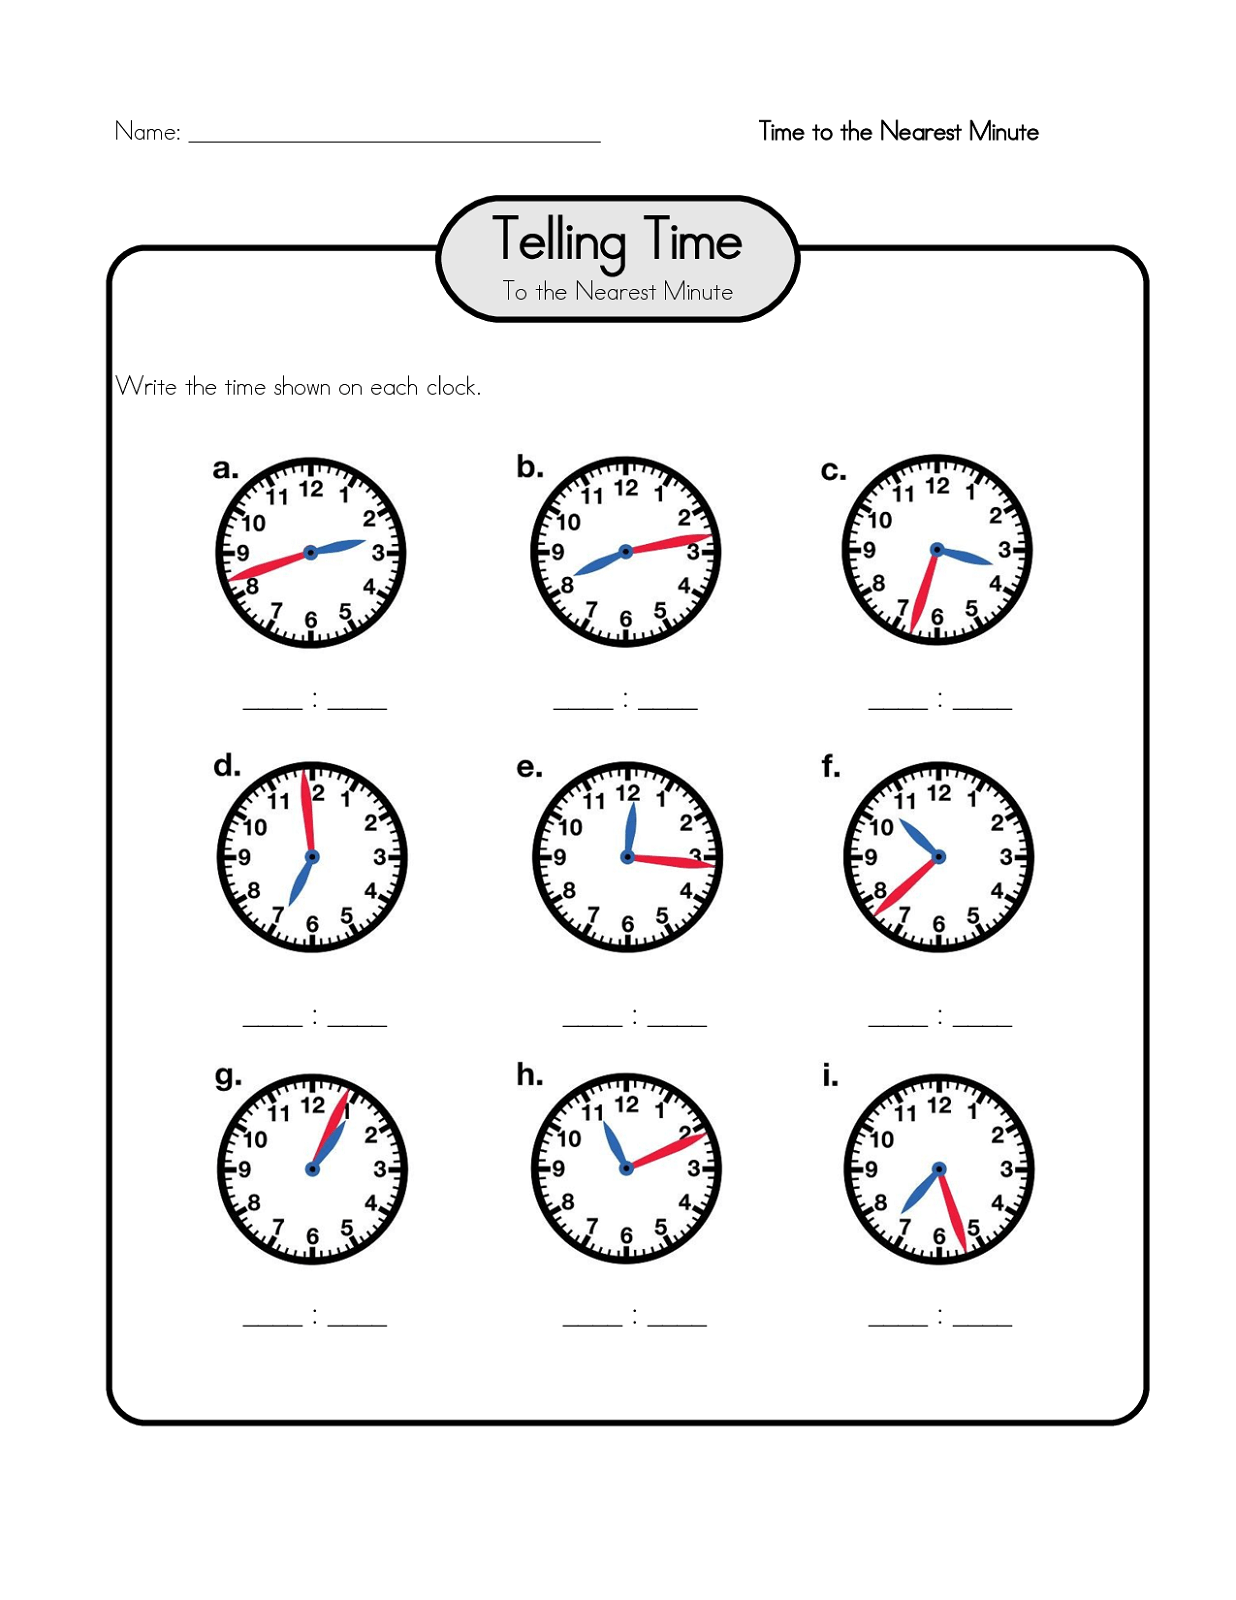 Time Elapsed Worksheets To Print